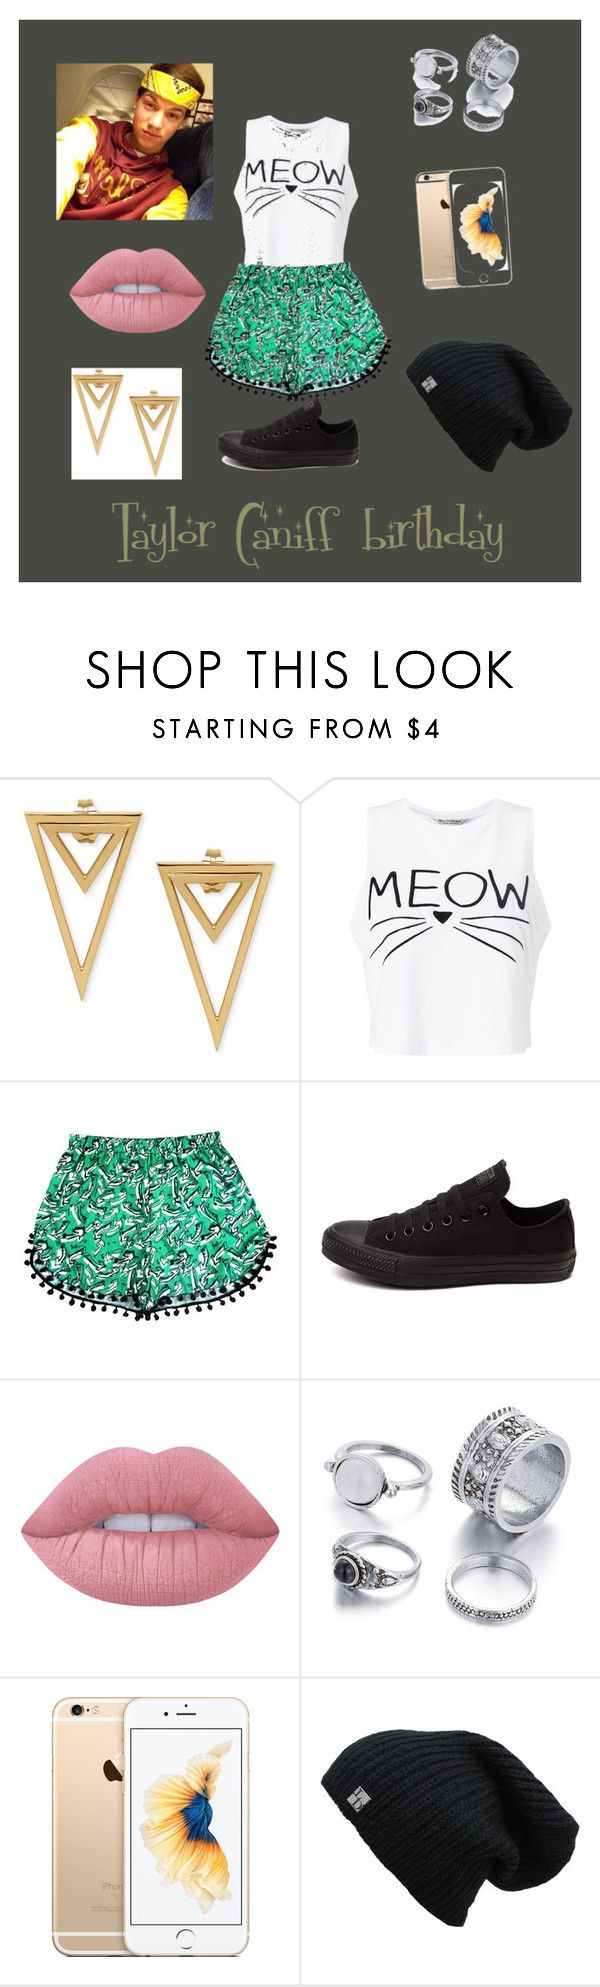 """Taylor Caniff birthday"" by cattycatty1313 ❤ liked on Polyvore featuring Miss Selfridge, Converse and Lime Crime"